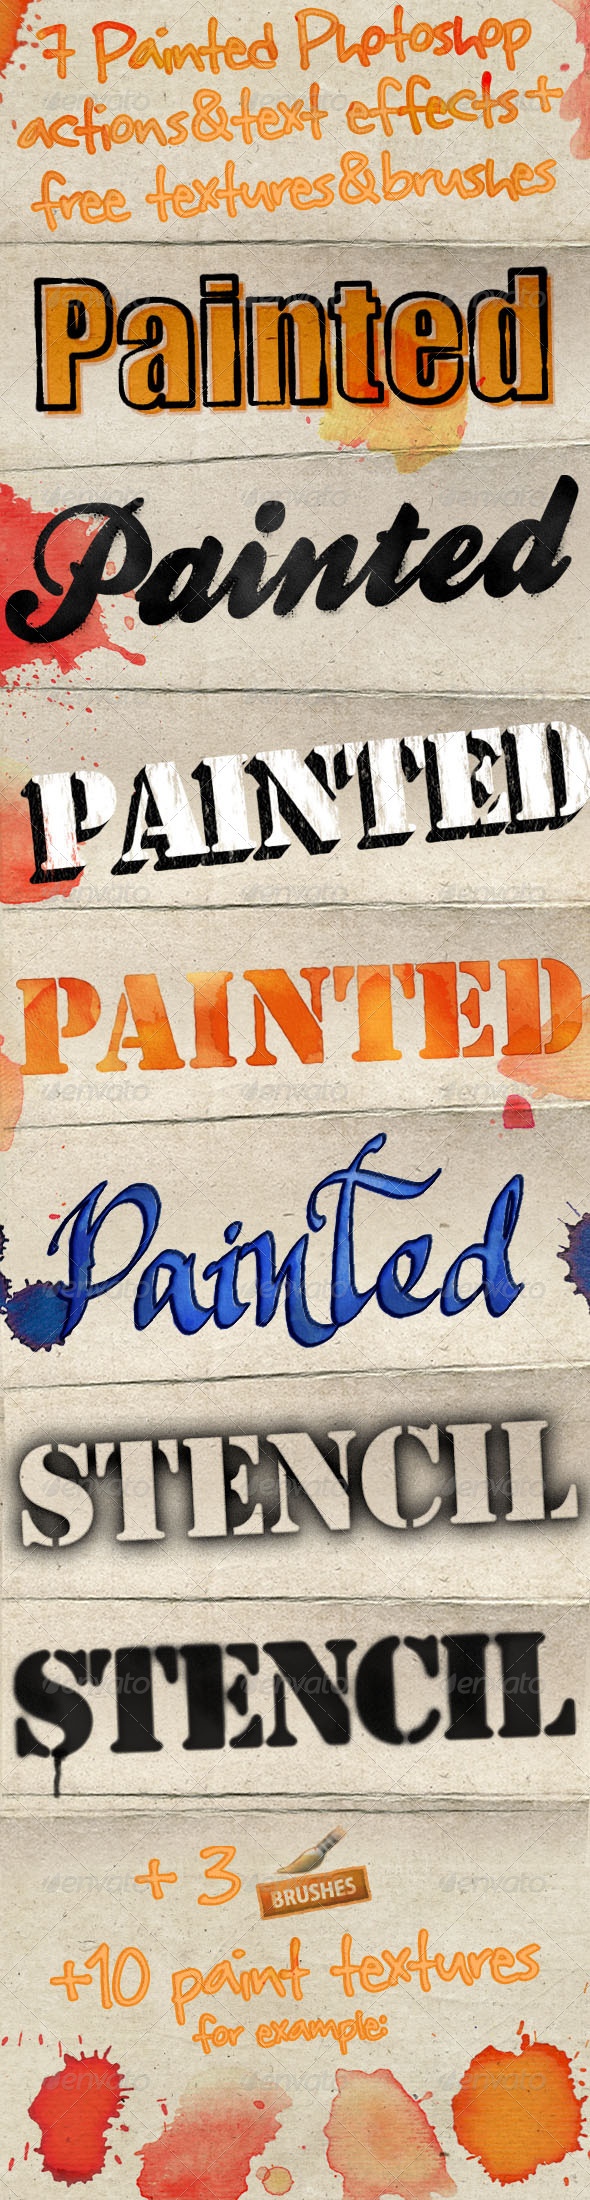 Painted Photoshop Text Effects & Actions - Text Effects Styles